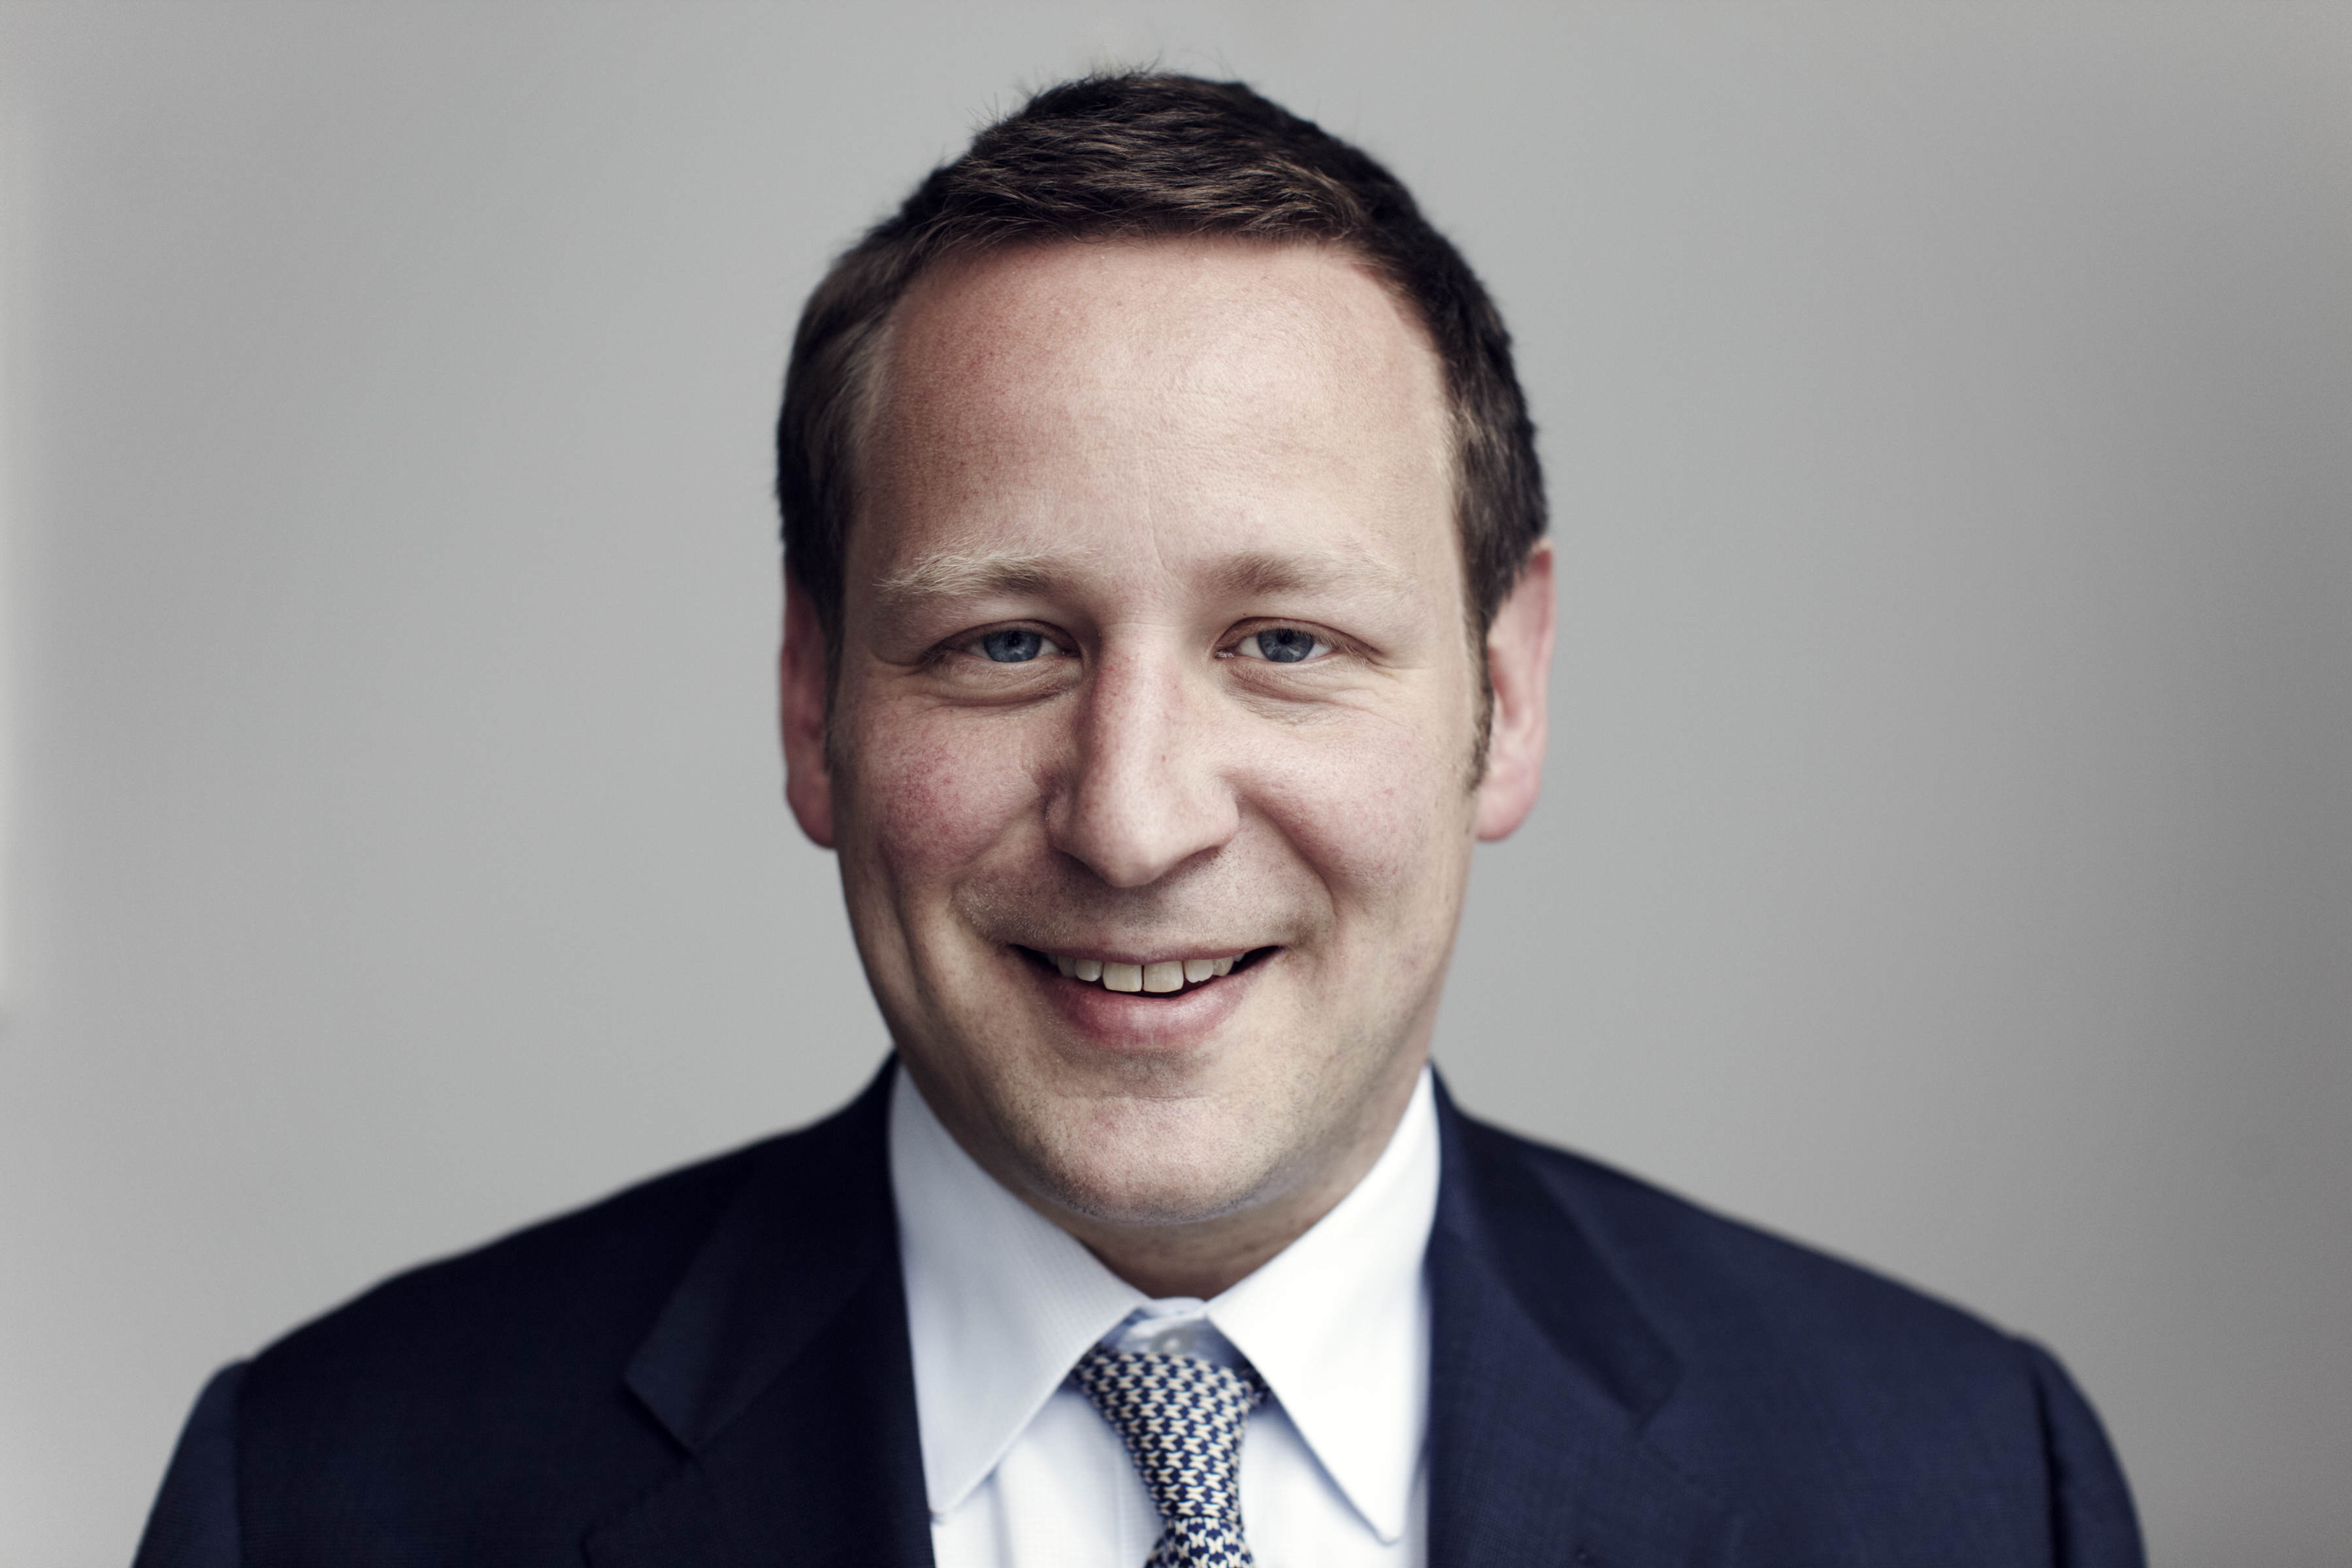 Screenshotting Snapchat Posts Could Actually Land You In Jail vaizey1